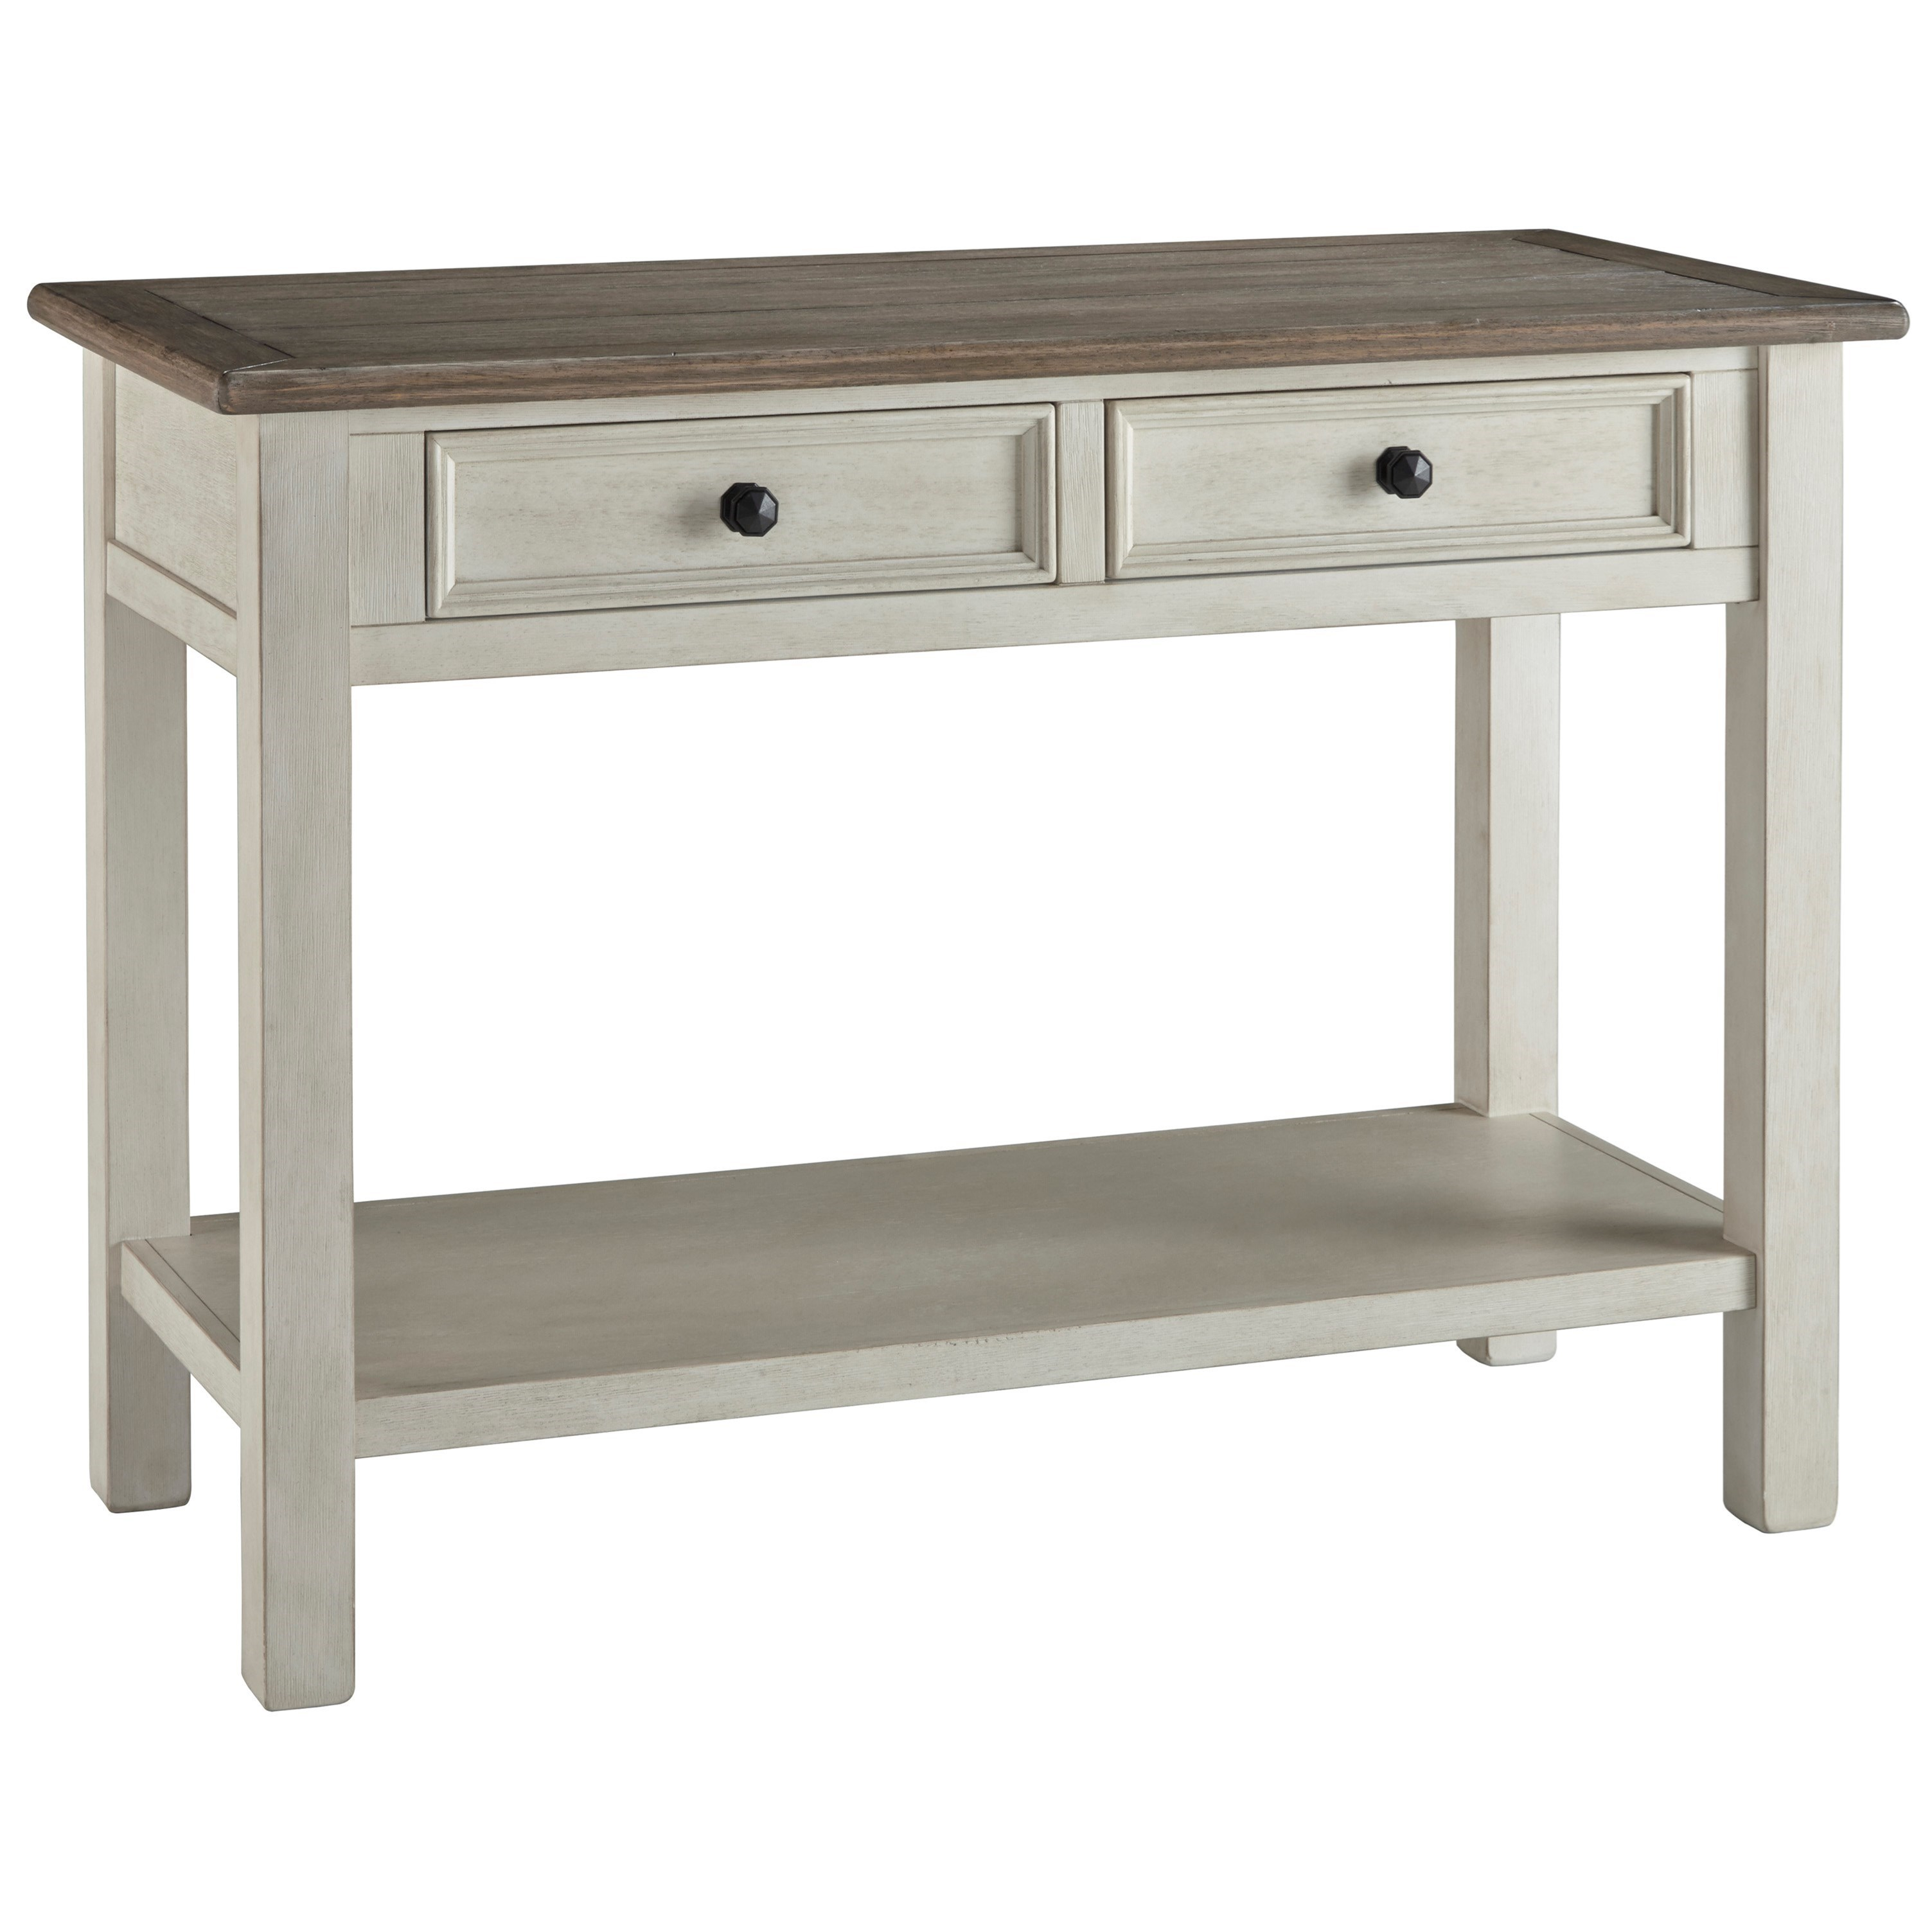 Bolanburg Sofa Table by Signature Design by Ashley at VanDrie Home Furnishings